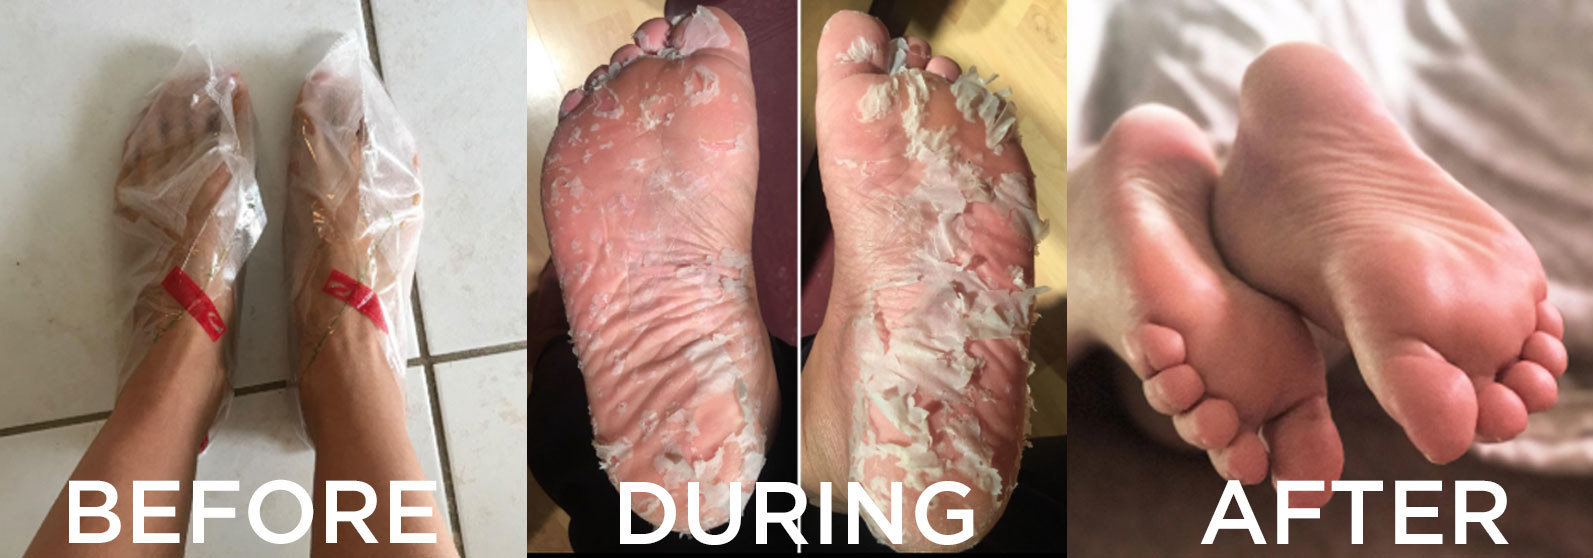 before: feet in bags during: peeling feet after: nice and smooth feet